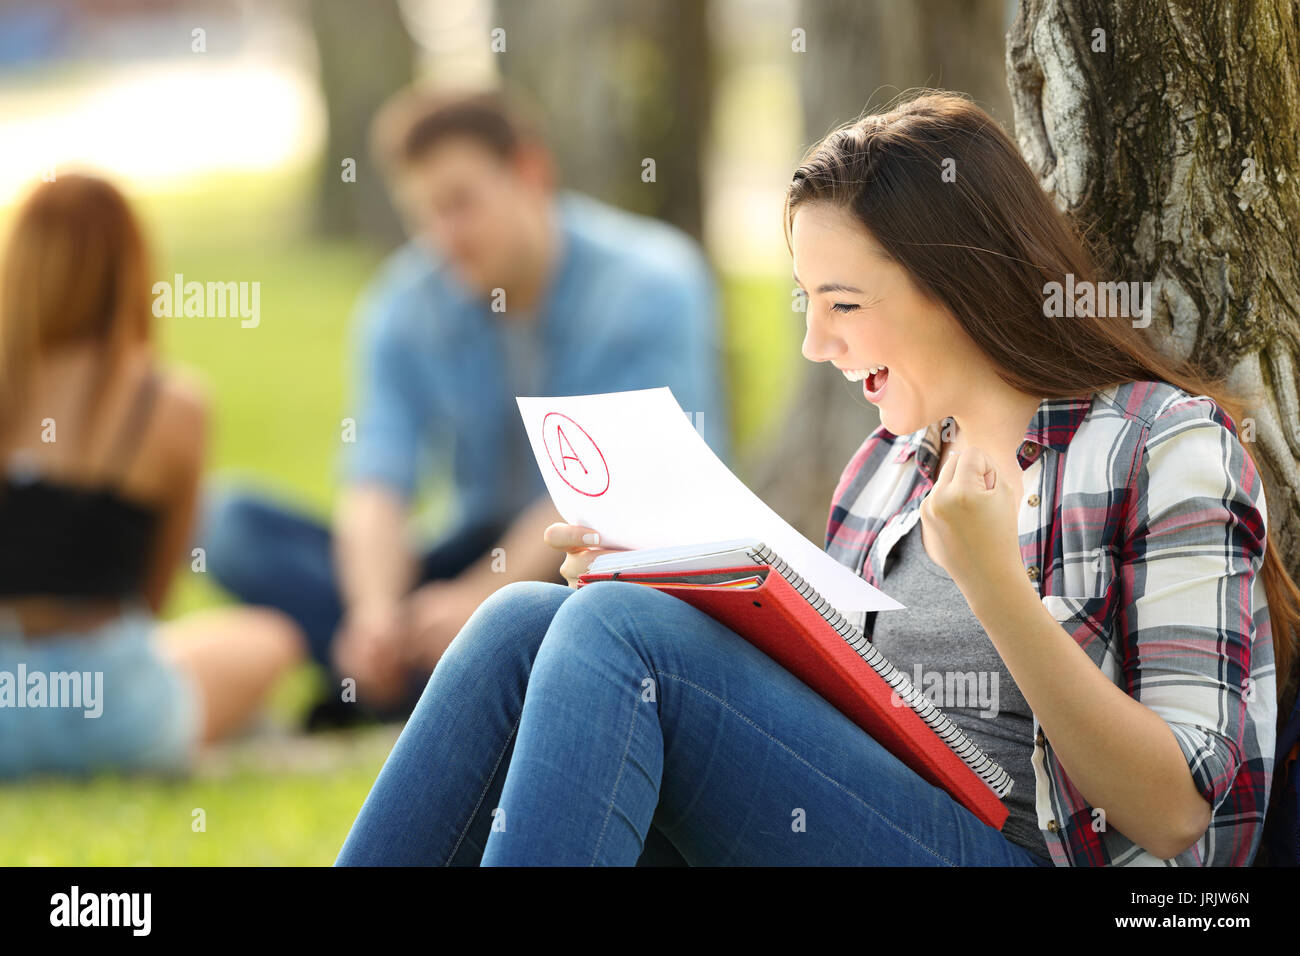 Excited student checking an approved exam sitting on the grass in a park with unfocused people in the background - Stock Image